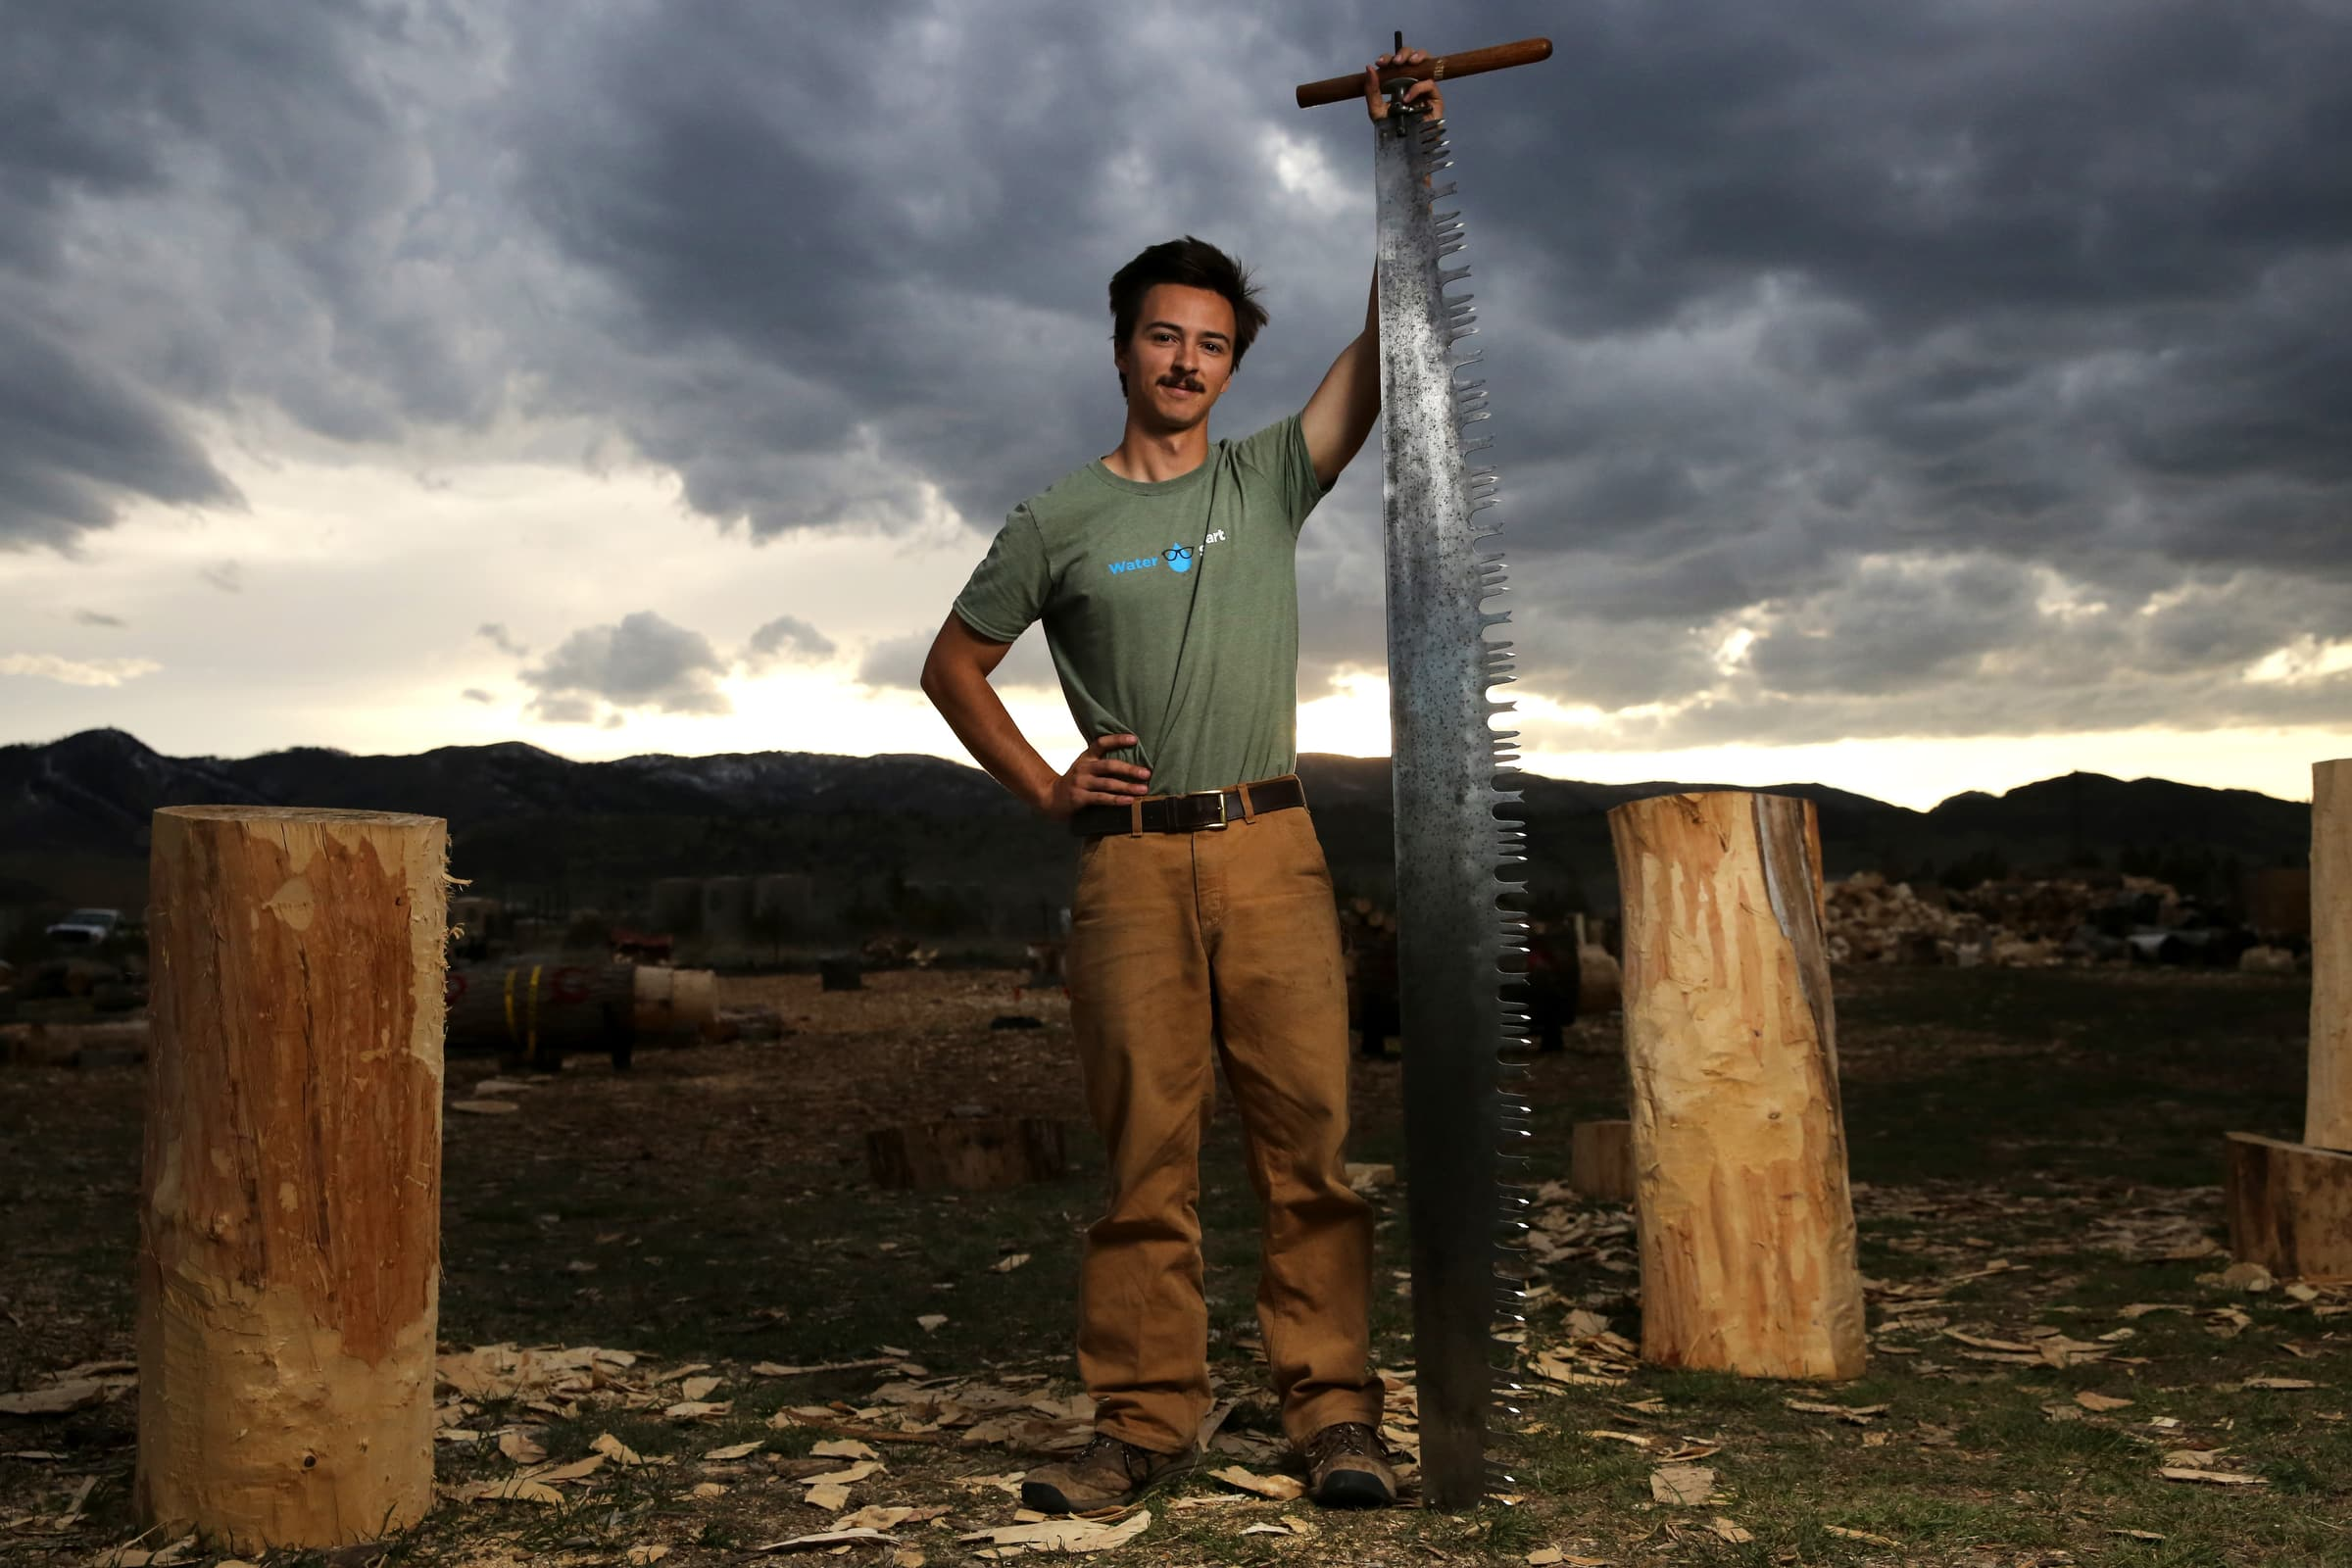 a man stands with a tall saw